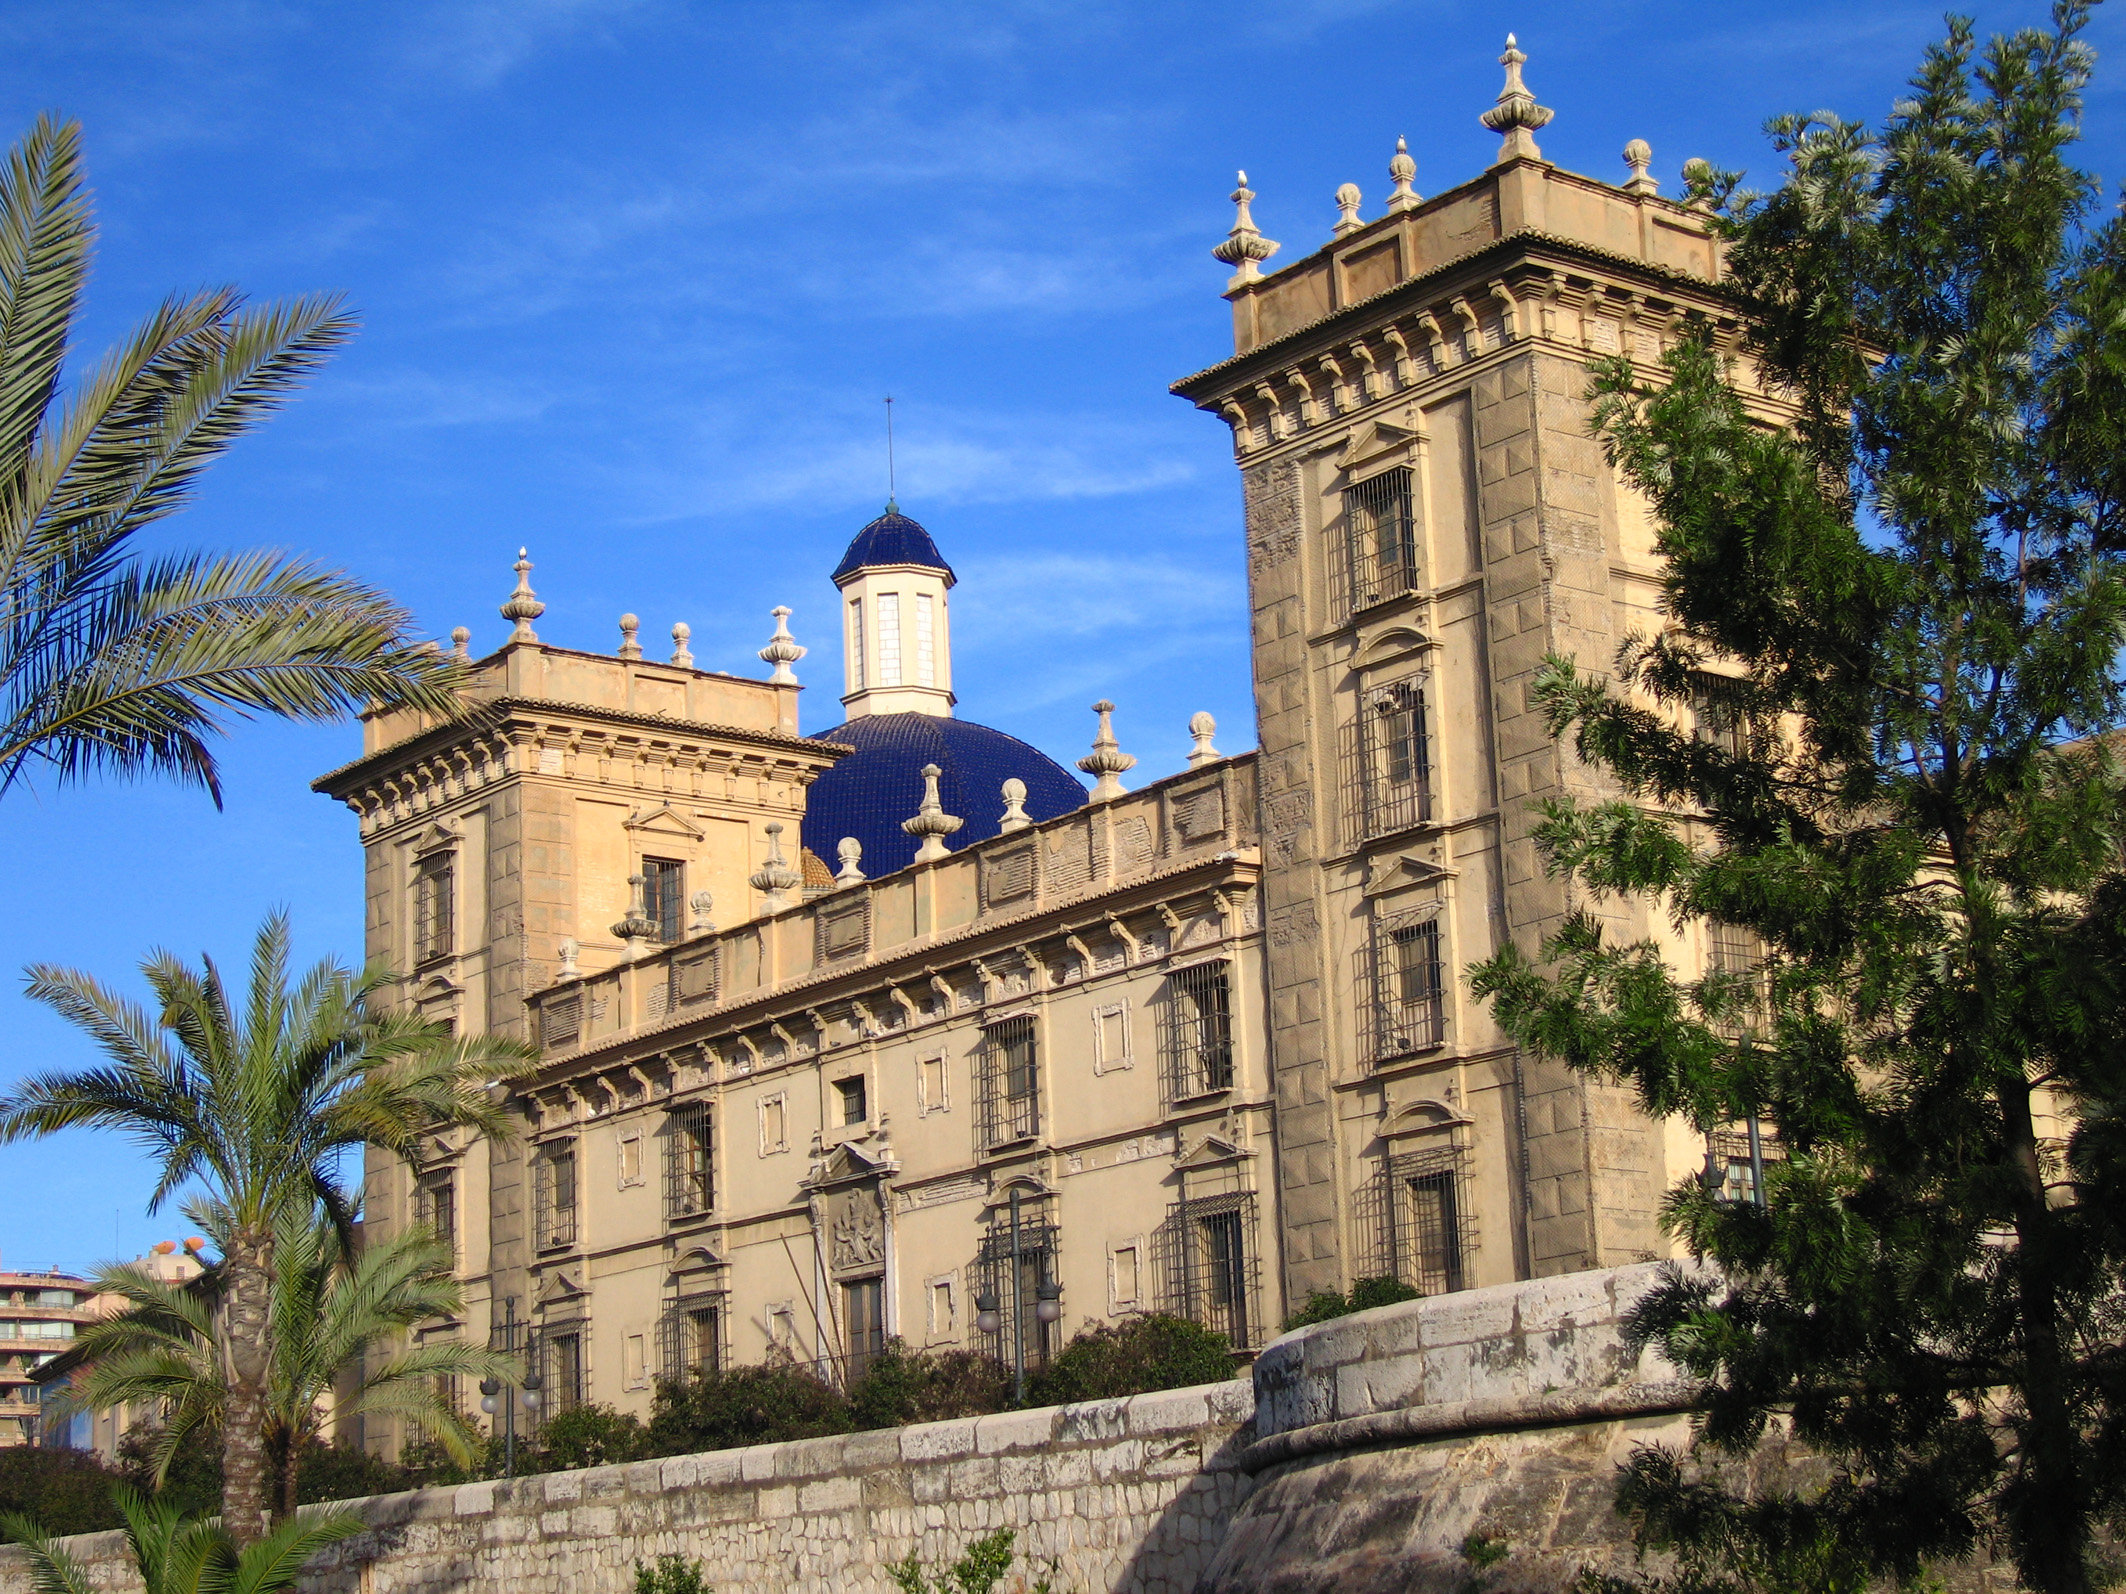 The Top 5 Things To Do And See In L'Eixample, Valencia